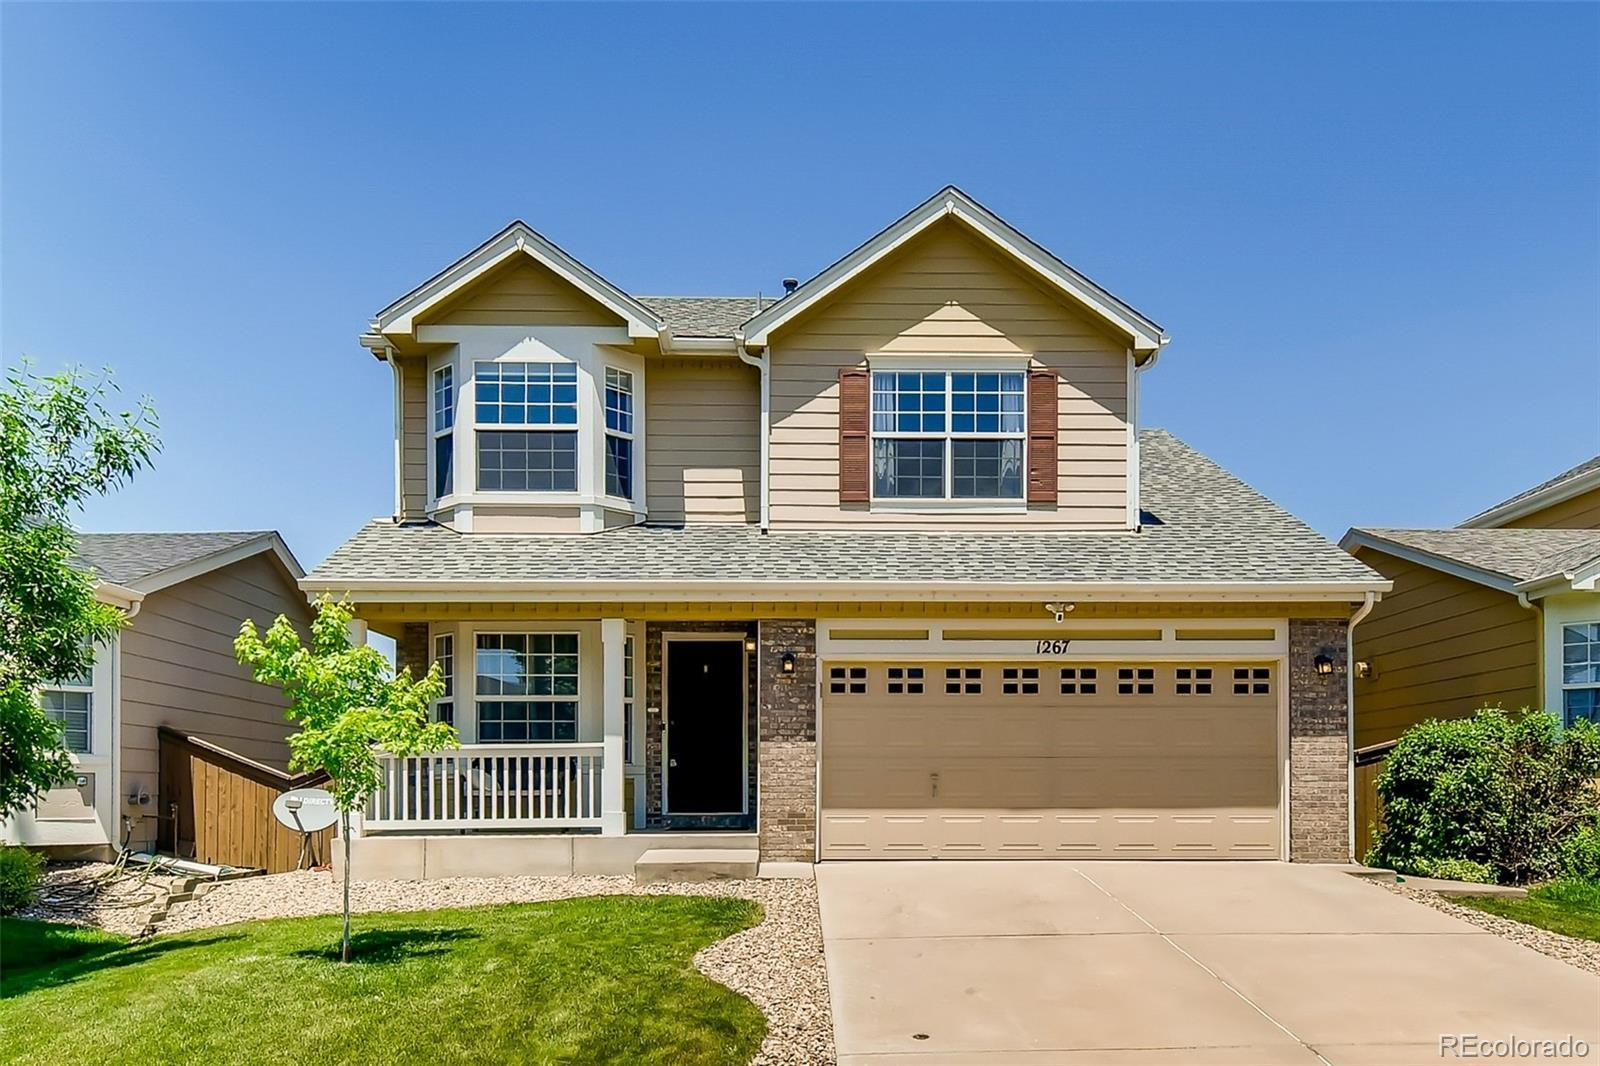 1267 Mulberry Lane, Highlands Ranch, CO 80129 - #: 7580602